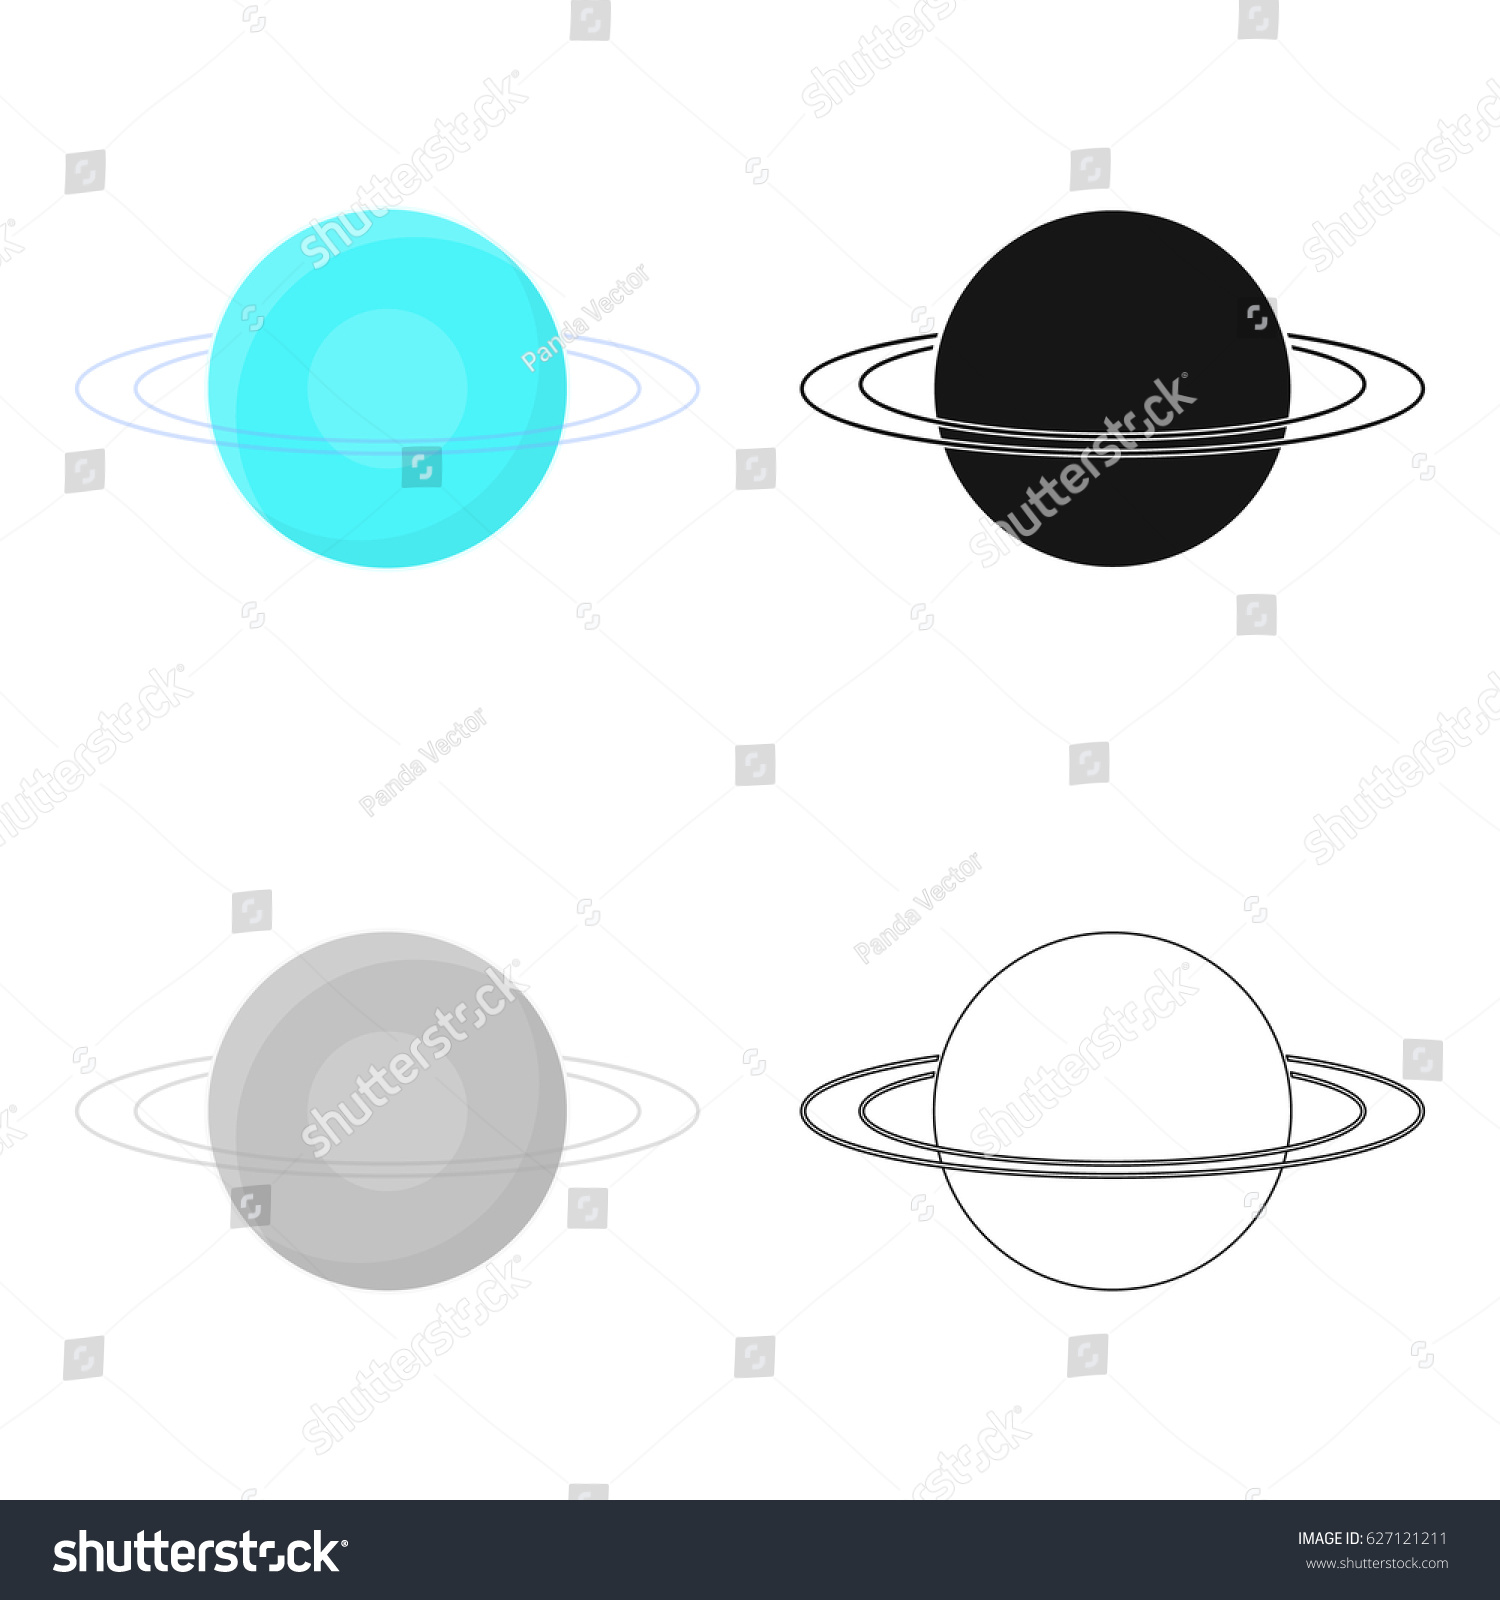 Uranus icon cartoon style isolated on stock vector 627121211 uranus icon in cartoon style isolated on white background planets symbol stock vector illustration biocorpaavc Images